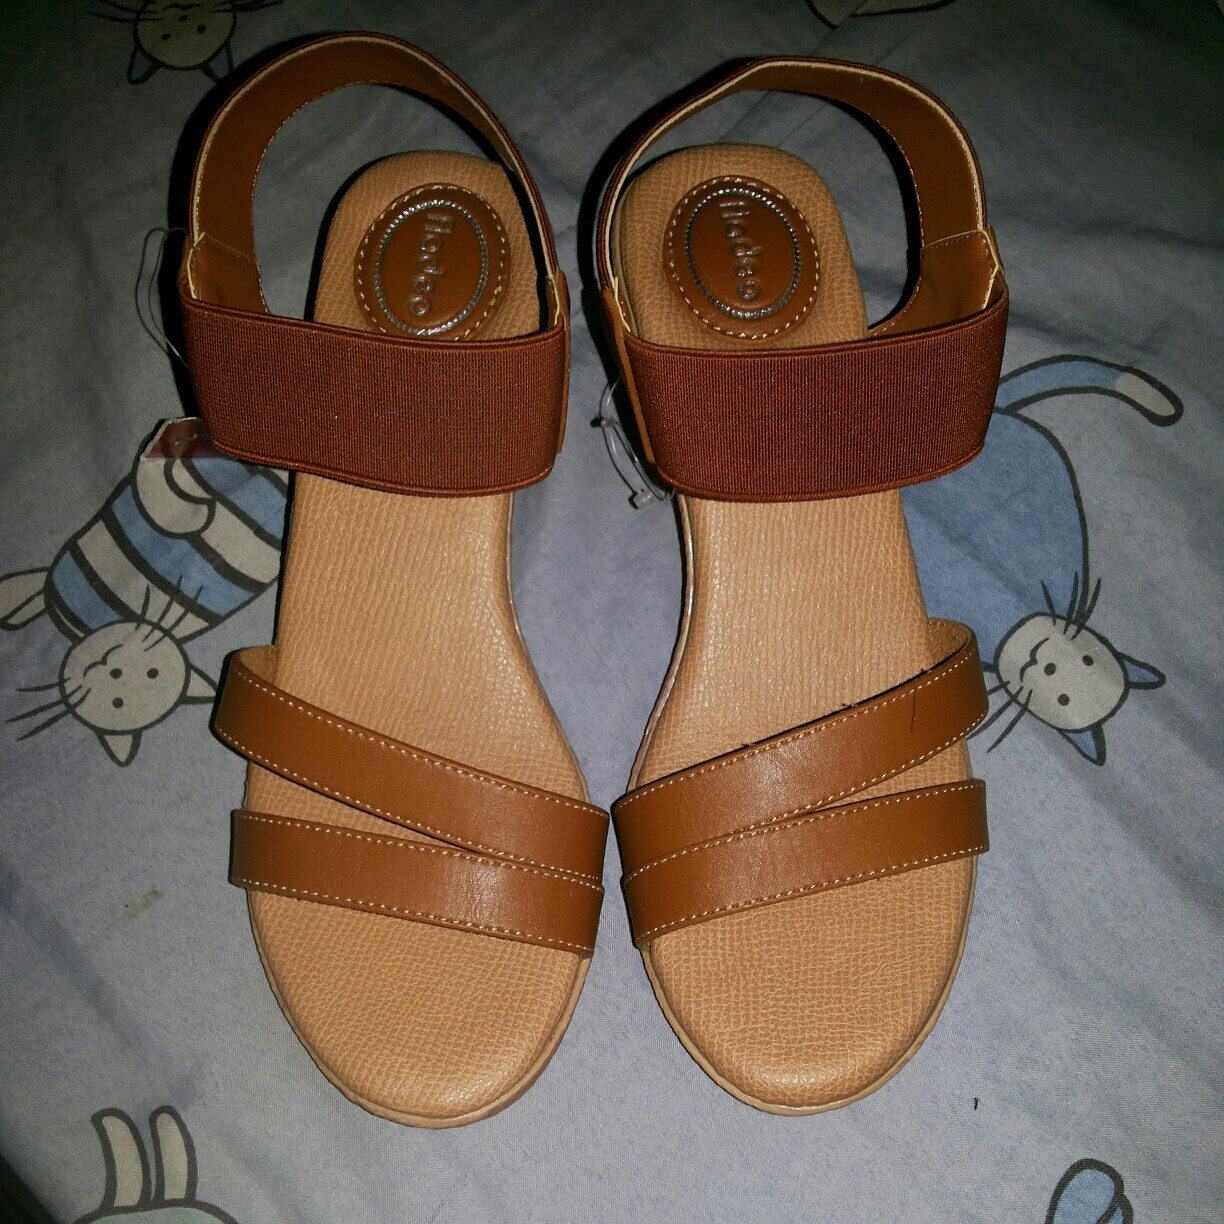 Sandal Wedges Fladeo